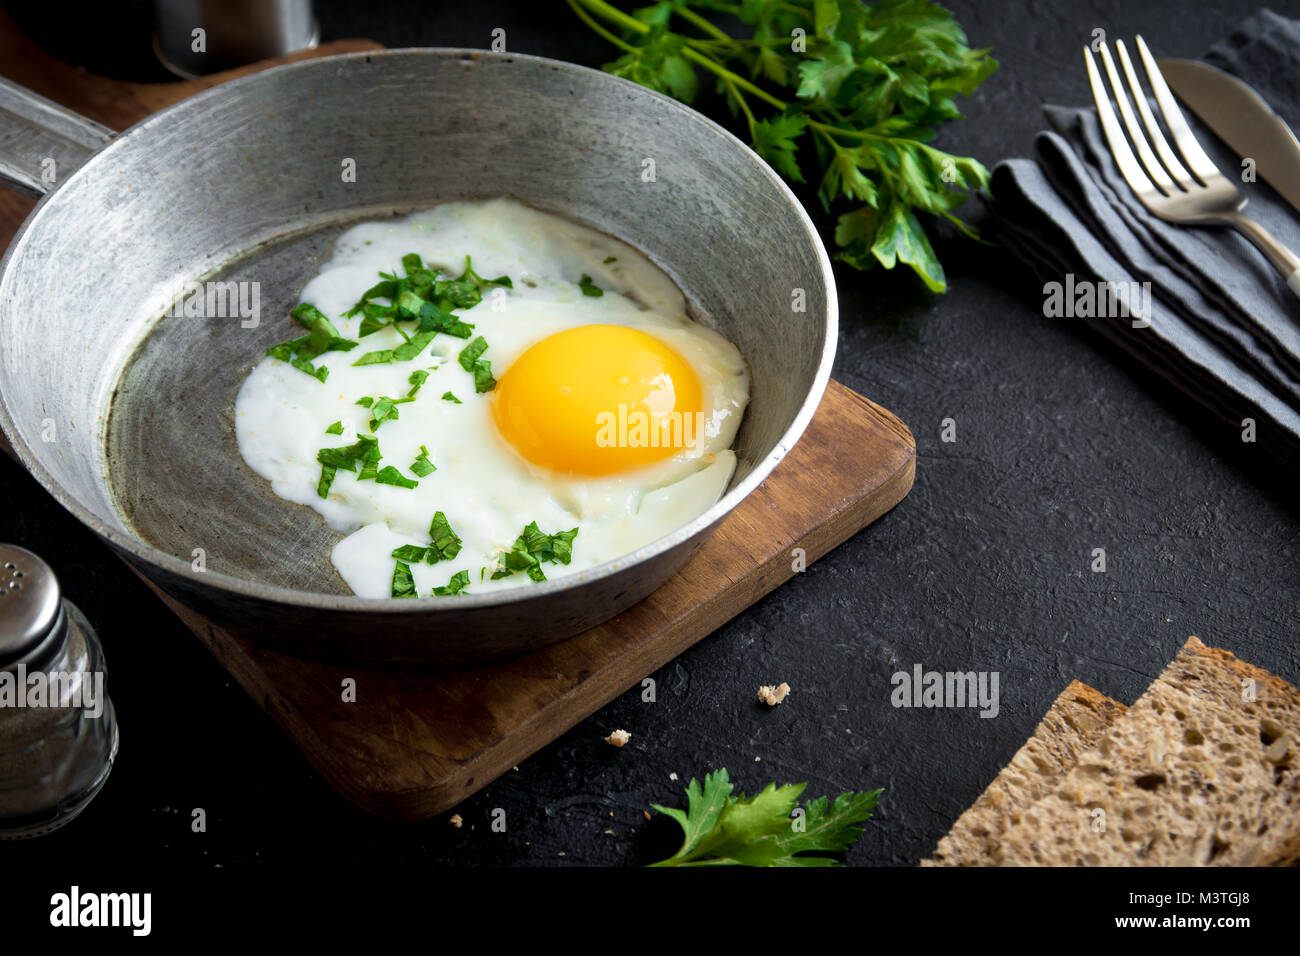 Fried Egg on Frying Pan for Breakfast. Fried egg with bread and parsley on skillet over black stone table, top view, - Stock Image